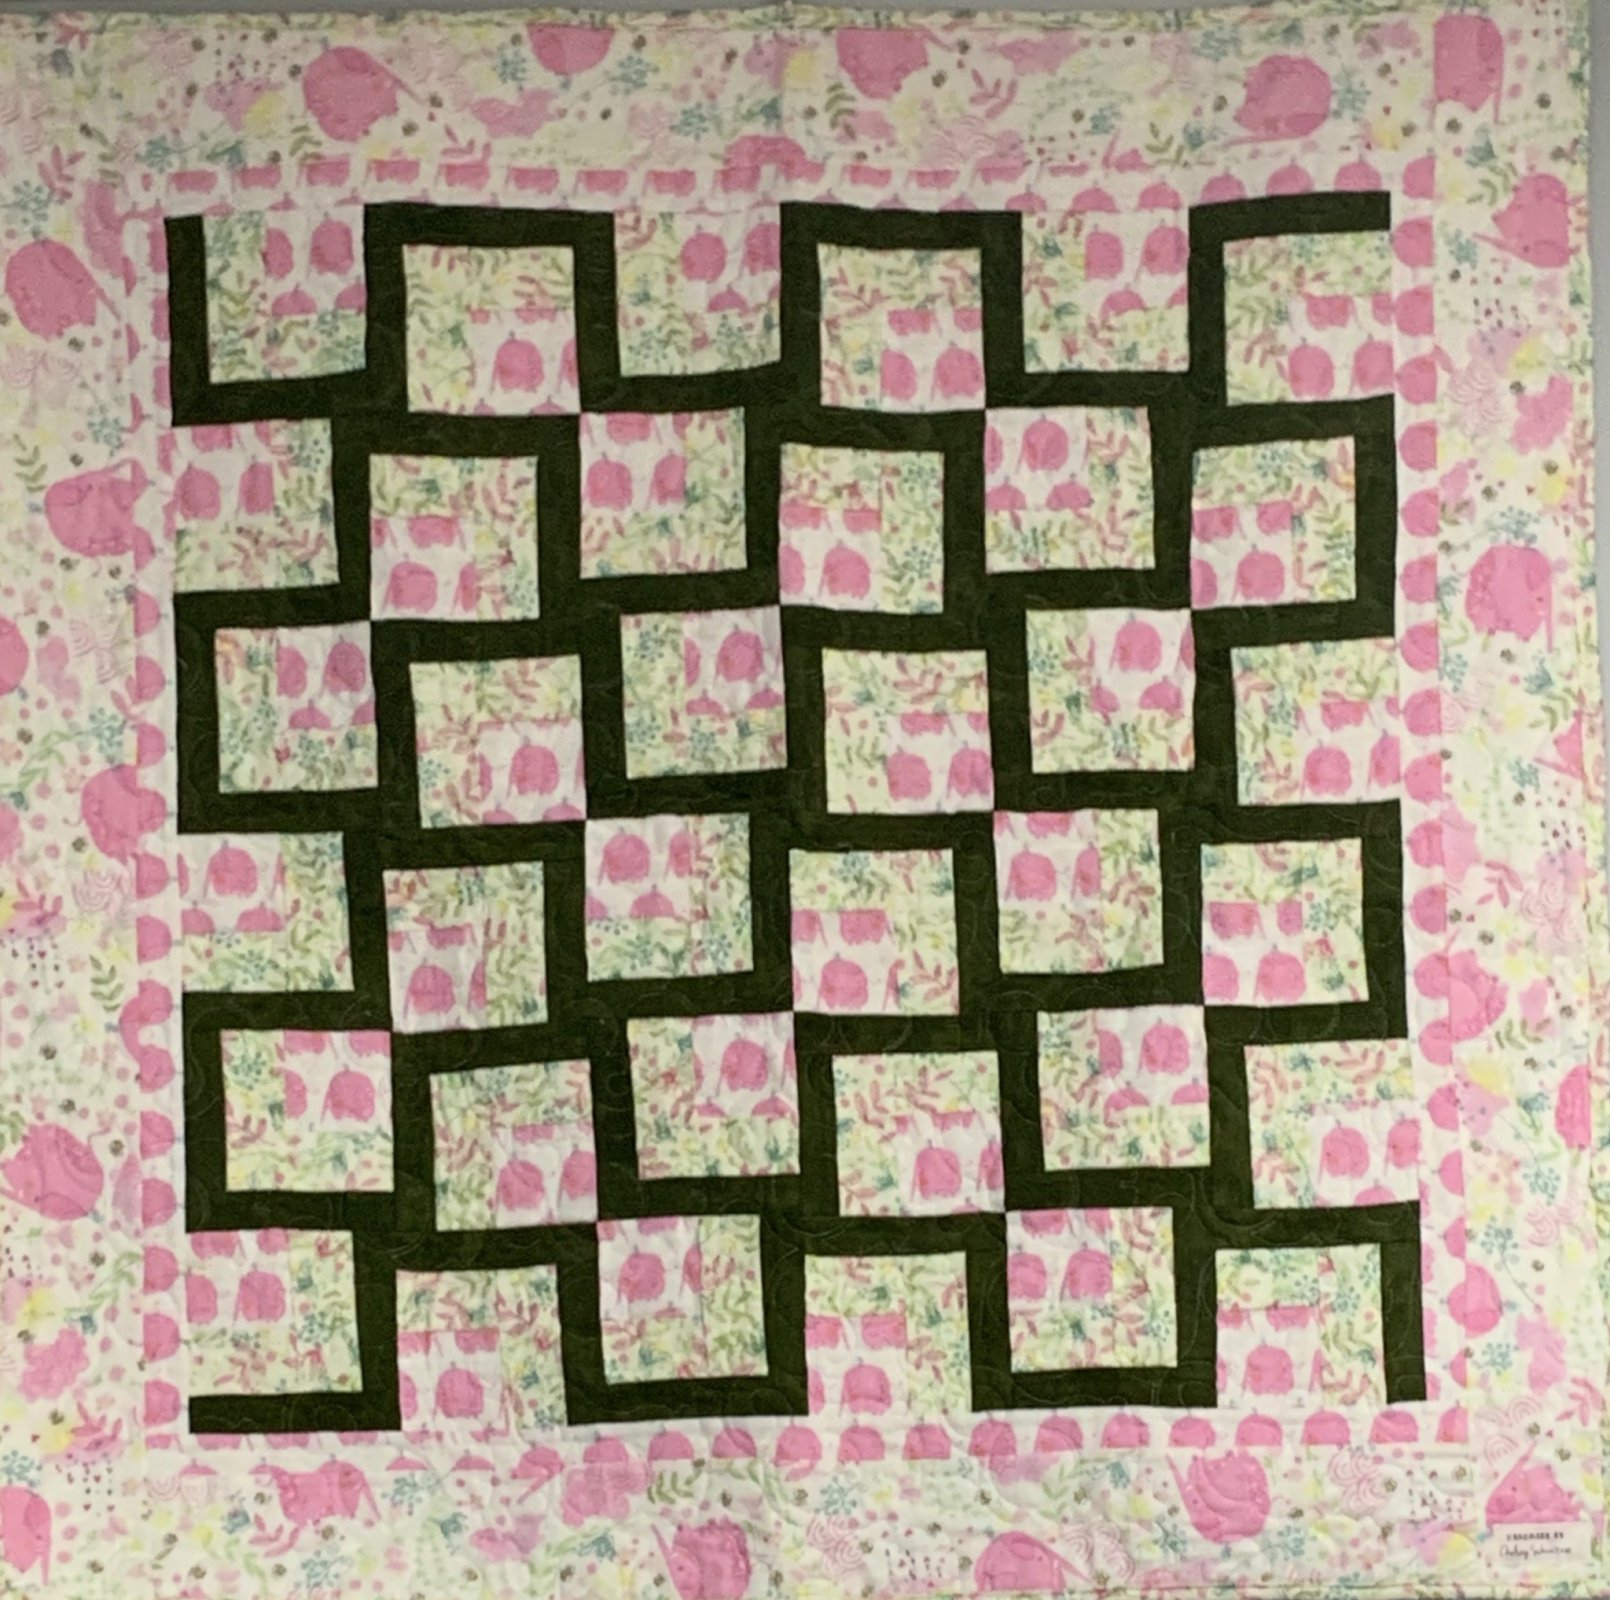 Baby Kissing Frogs Quilt Kit (39 x 39)